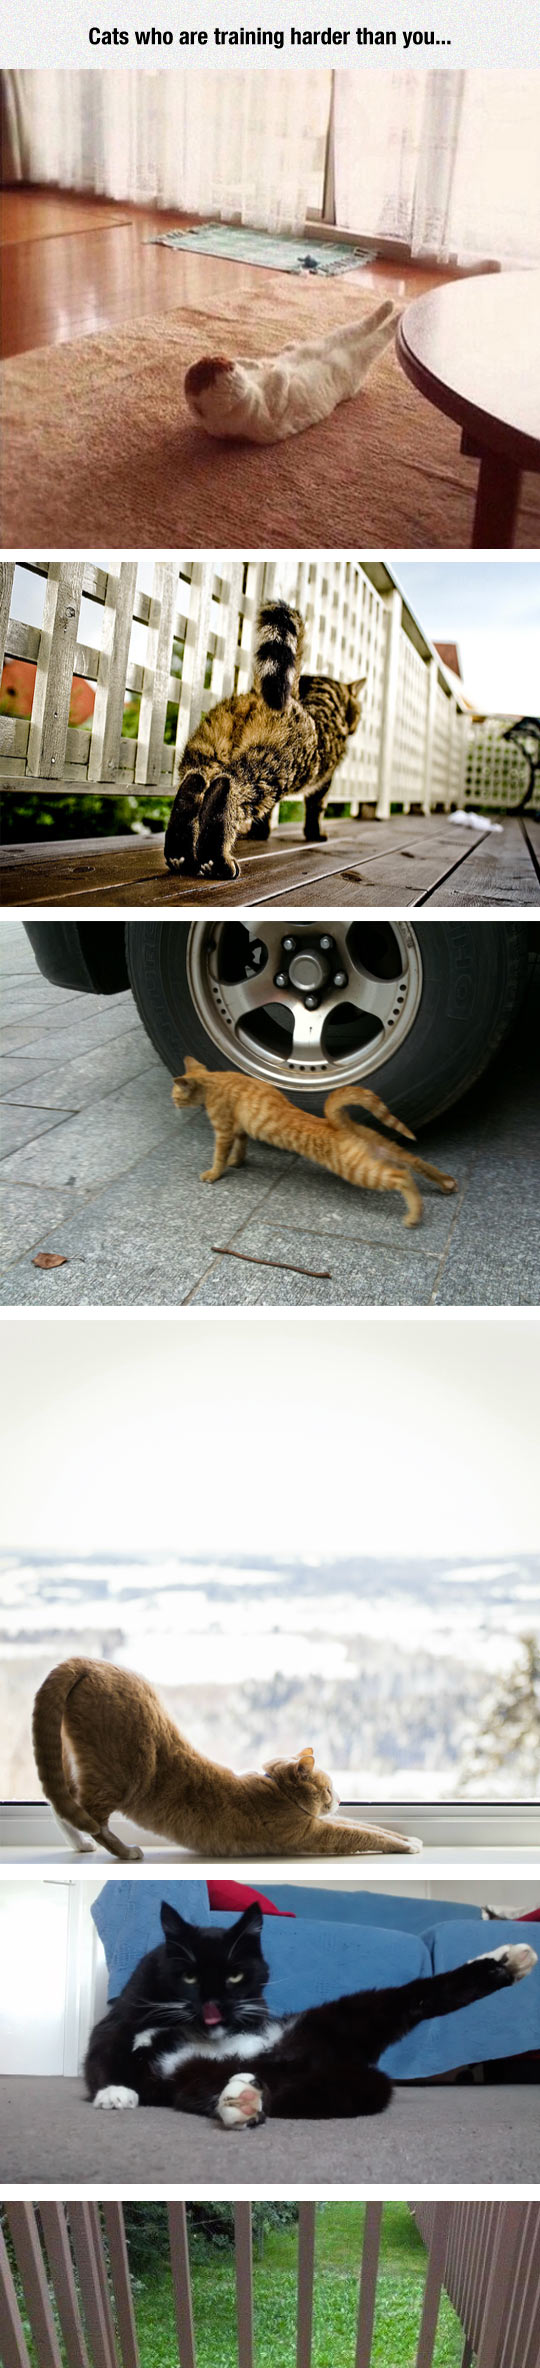 funny-cats-working-out-exercise